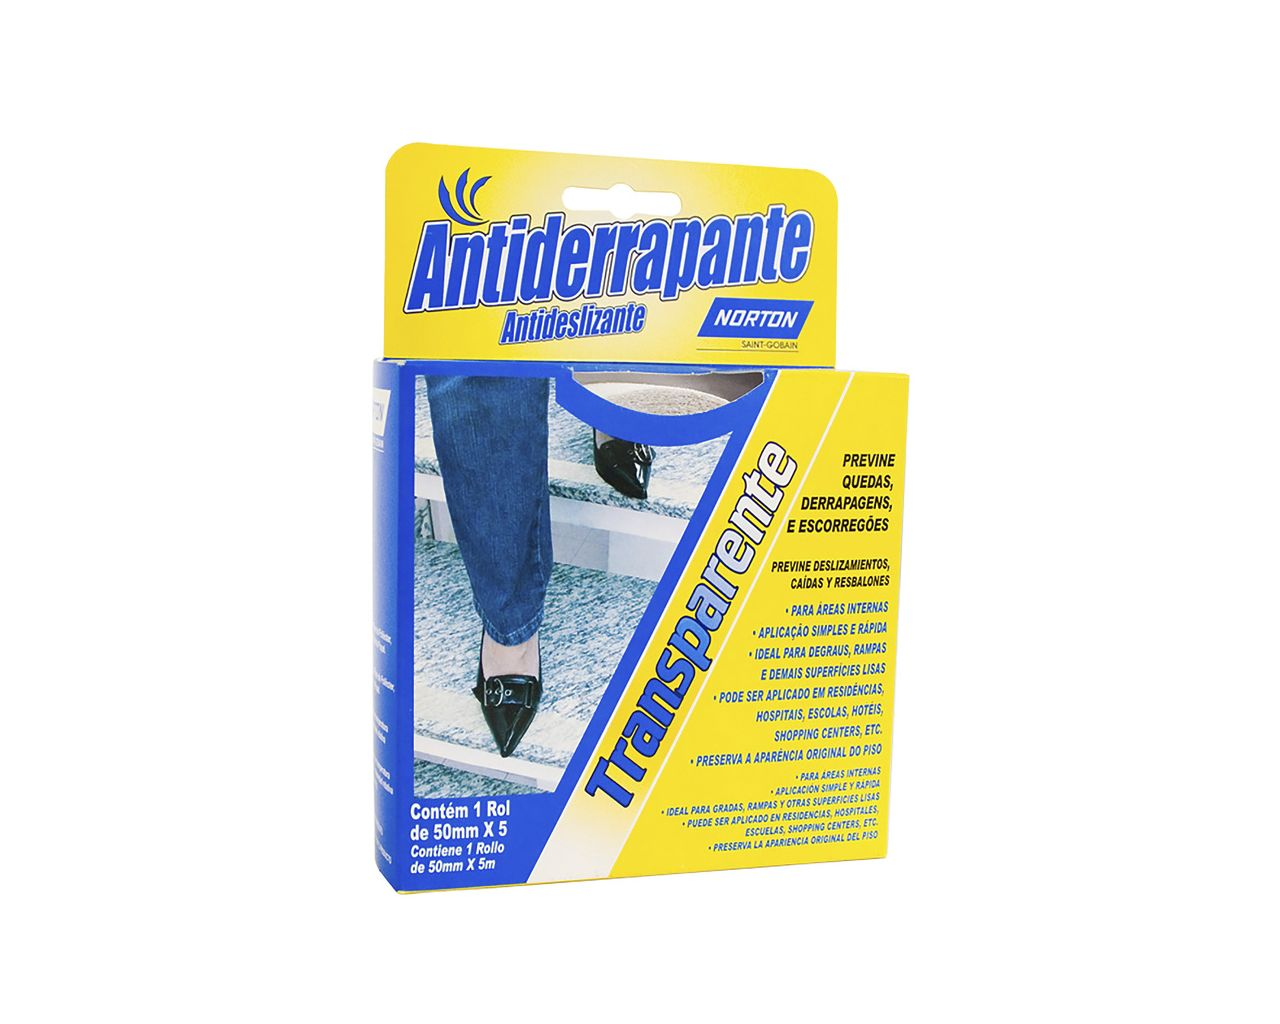 FITA ANTIDERRAPANTE 50MMx5M TRANSPARENTE BLISTER